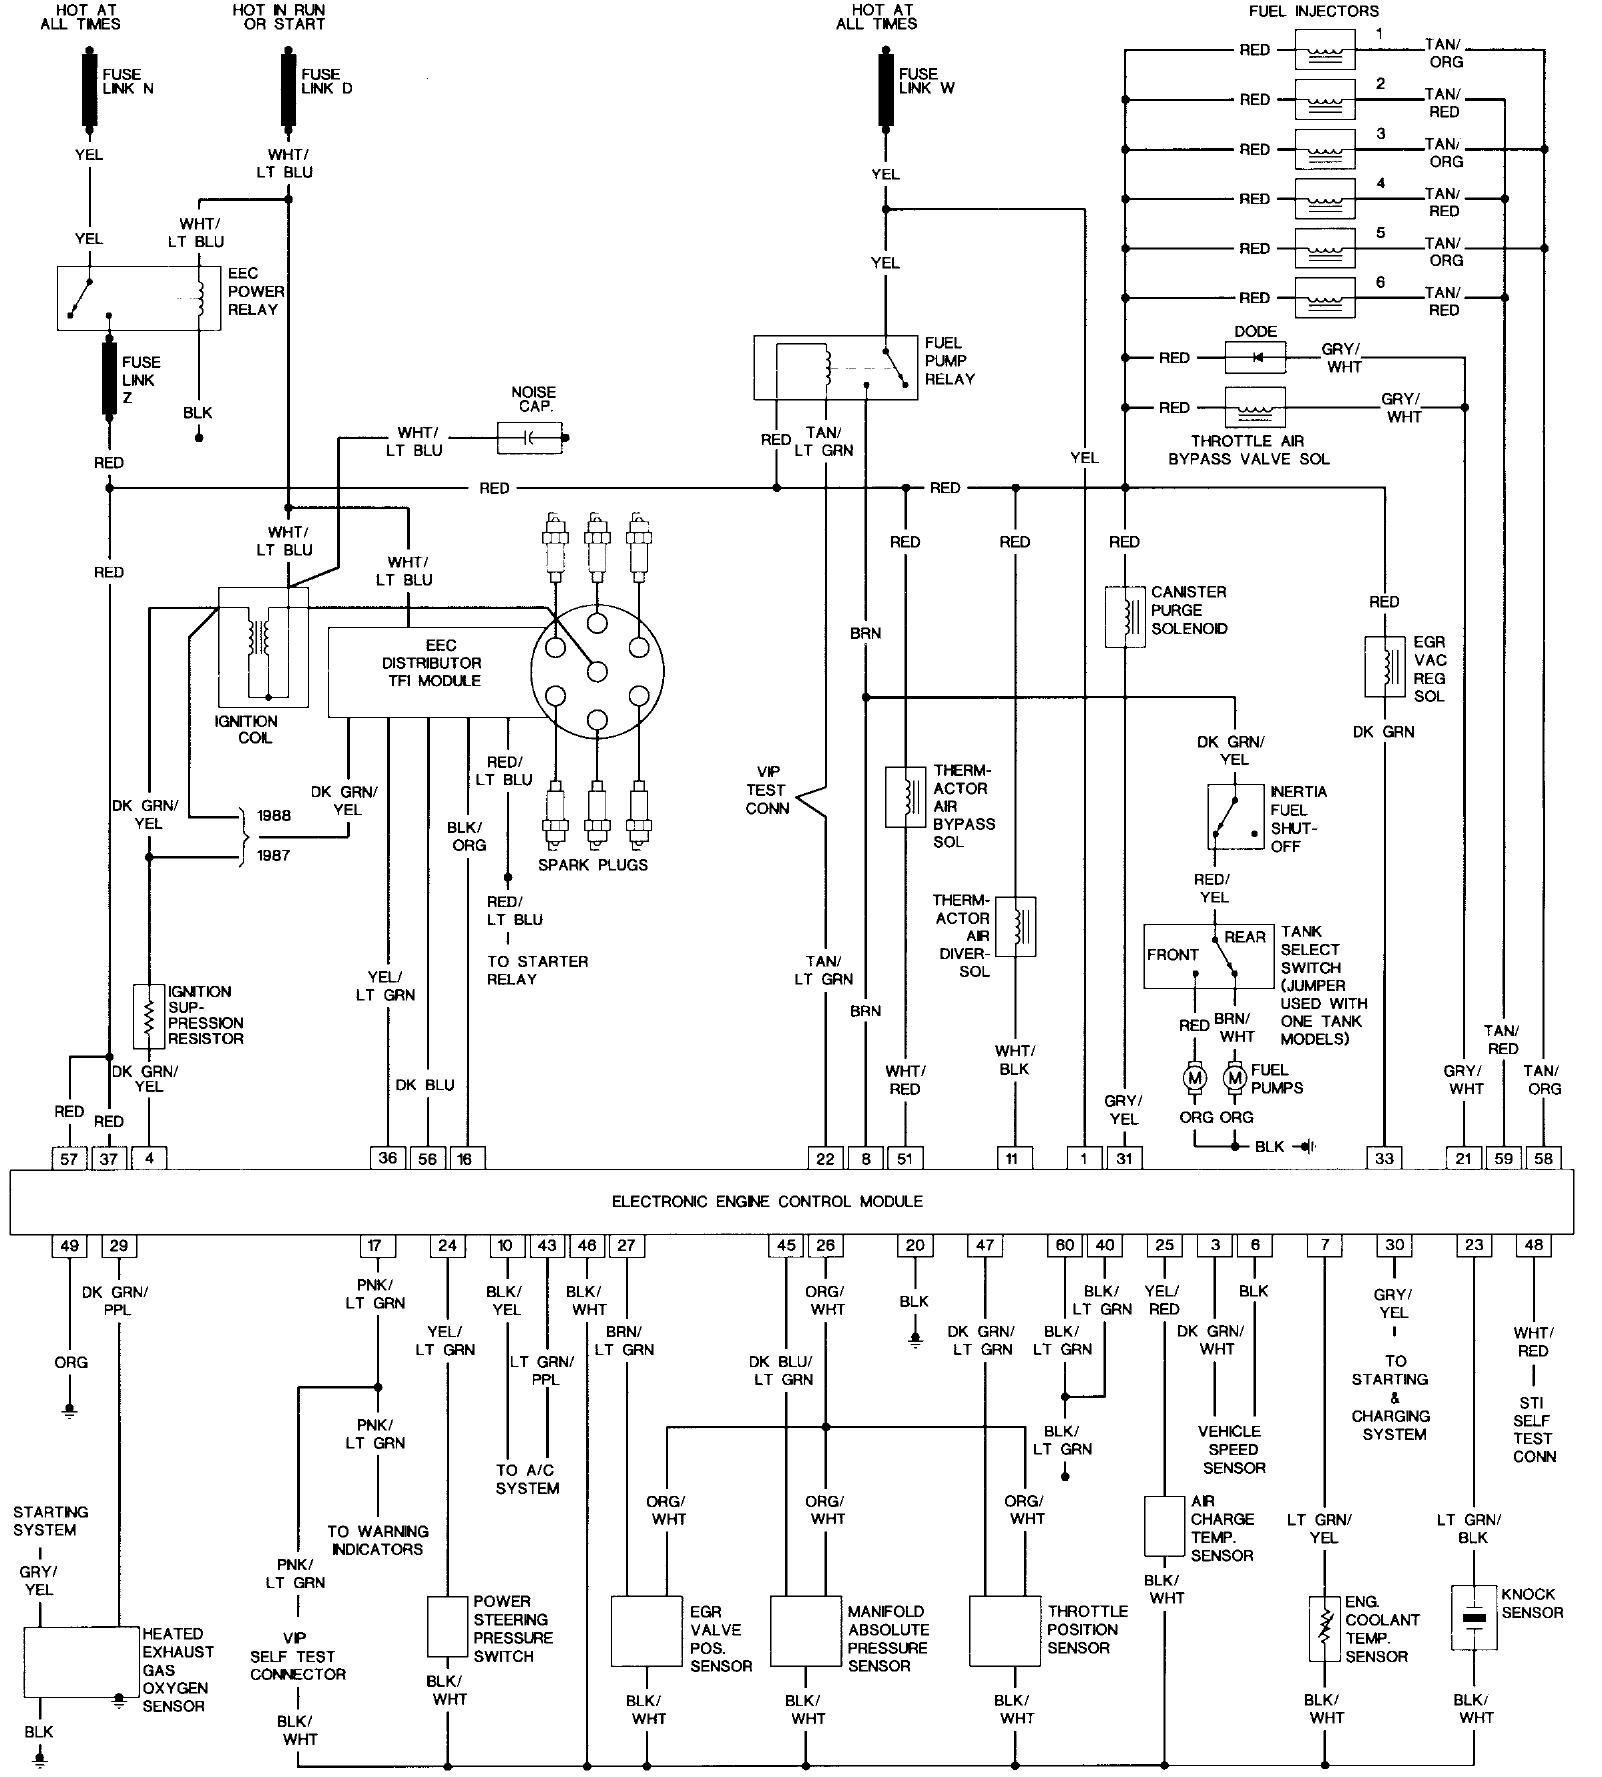 2002 diesel ford f 250 wiring diagram wiring diagram for 1986 ford f250 the wiring diagram wiring diagram 1988 ford f 250 wiring